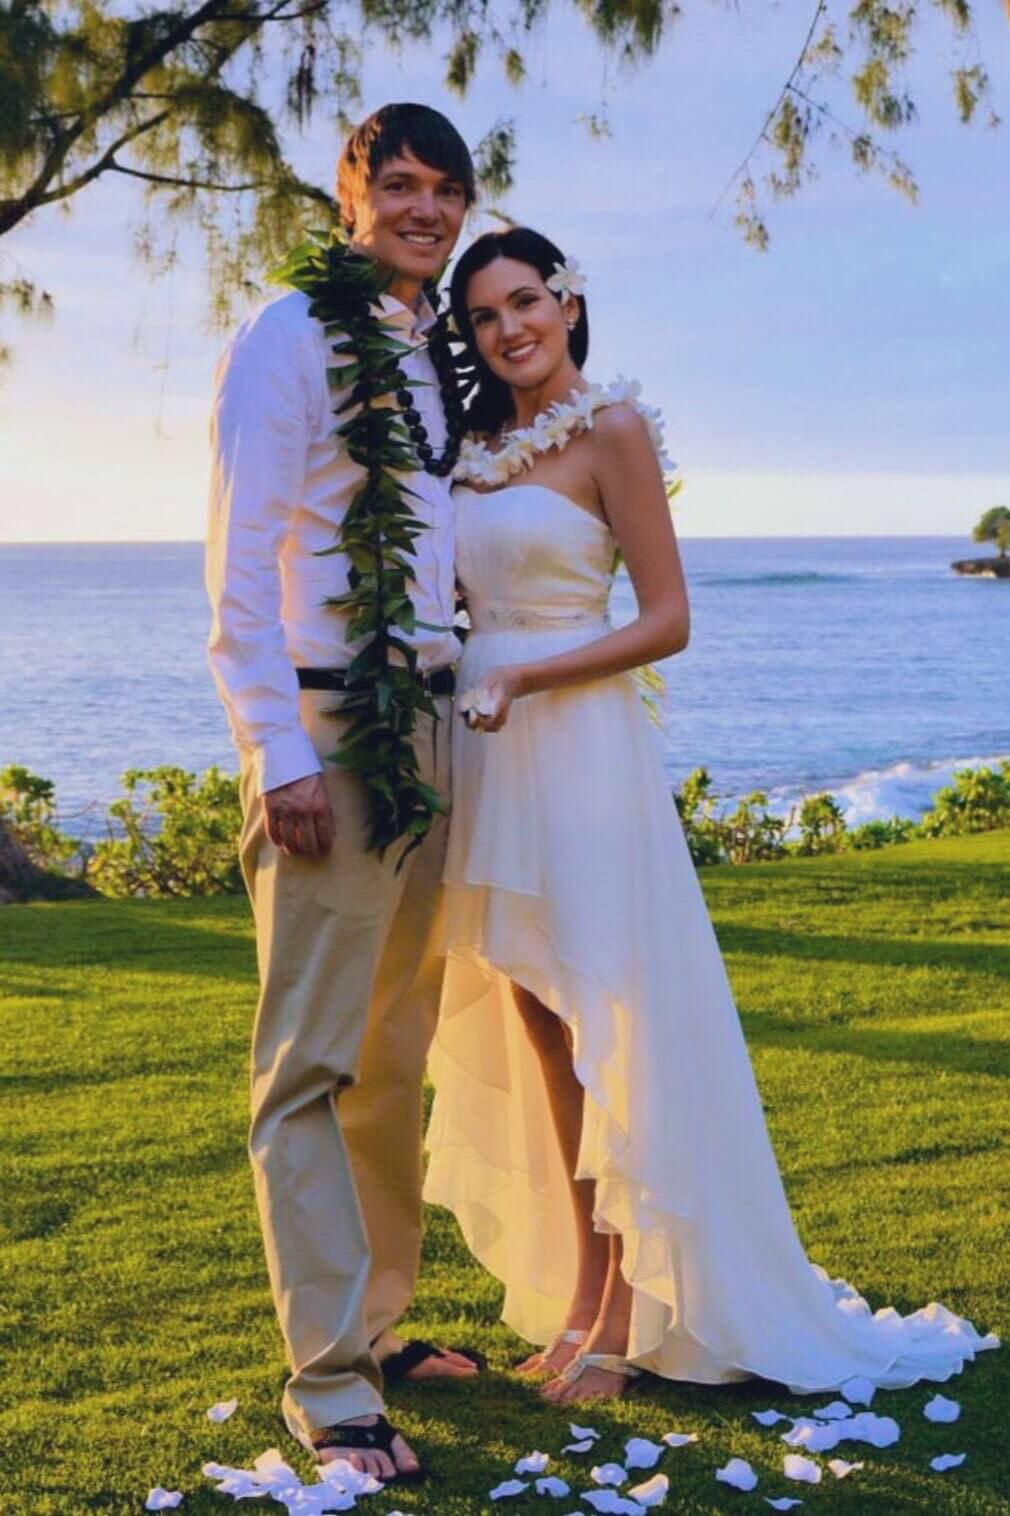 Garret and Nathalie on their 10 year wedding anniversary in Hawaii